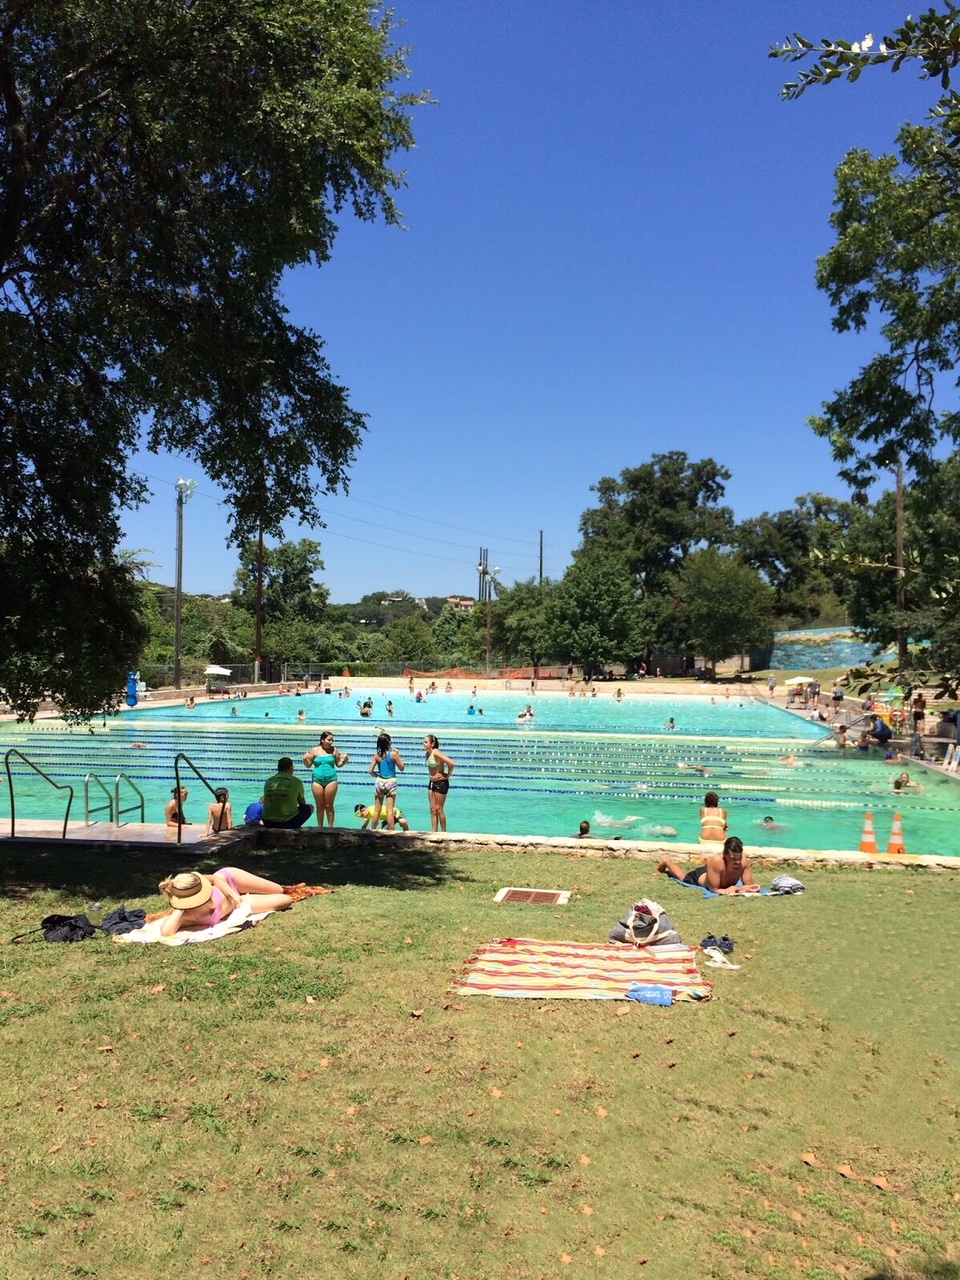 An outdoor pool in austin with kids